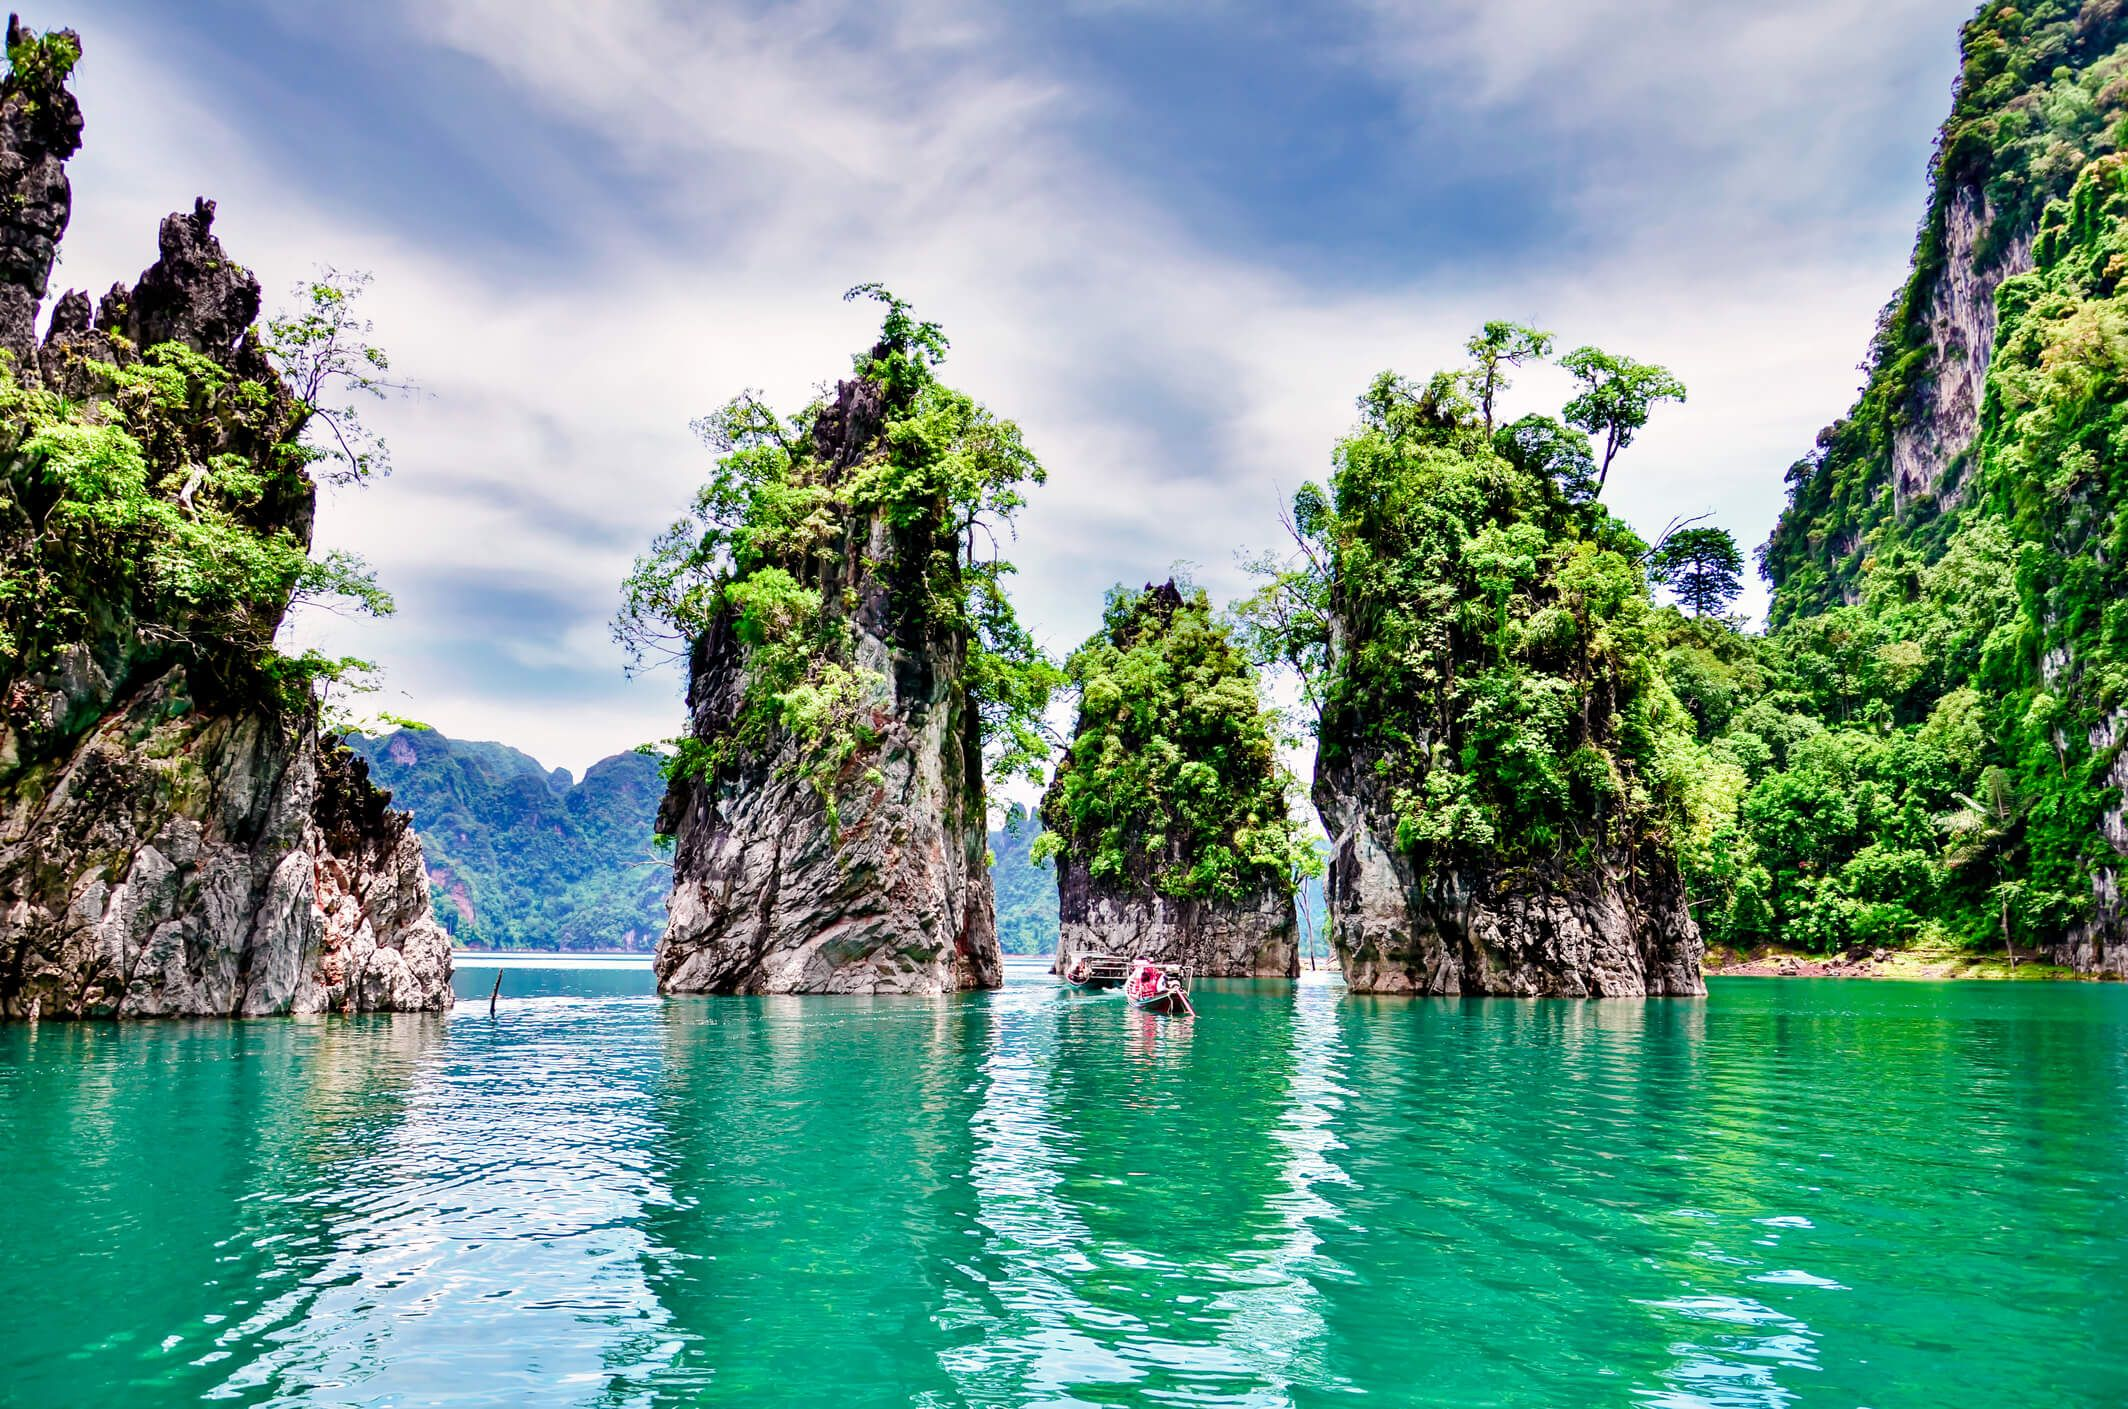 Top 7 Islands in Thailand You Must Visit and Why - travel.earth   Coron  island, Koh samui travel, Island tour